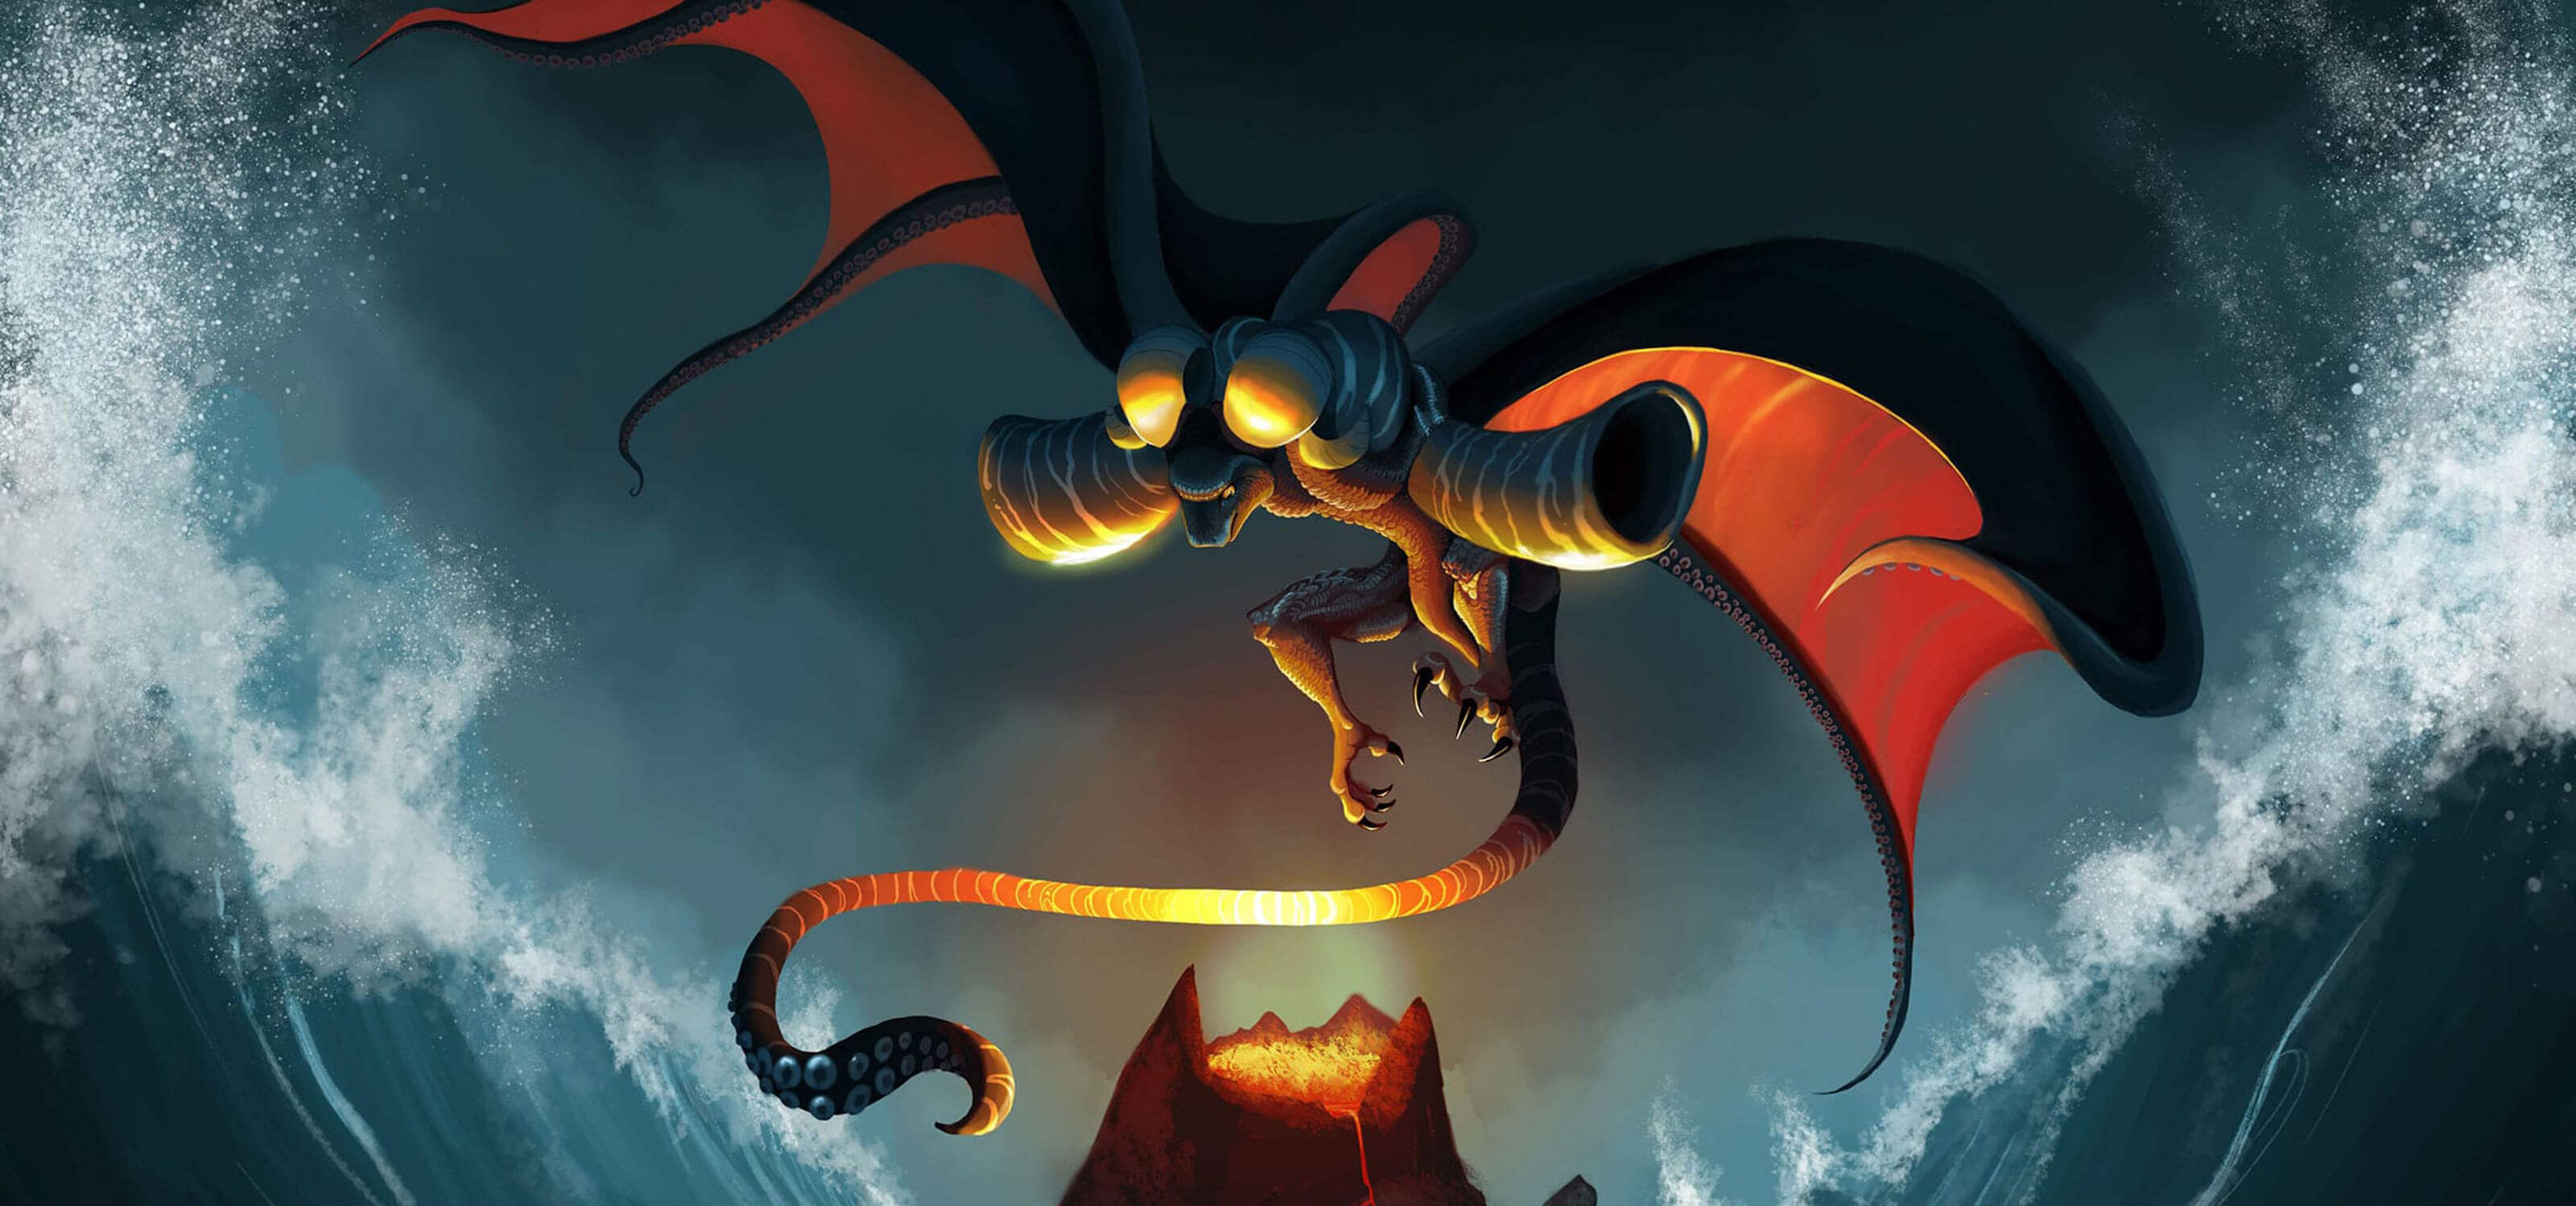 A creature with dragon and octopus characteristics hovers over a volcano with waves crashing on either side